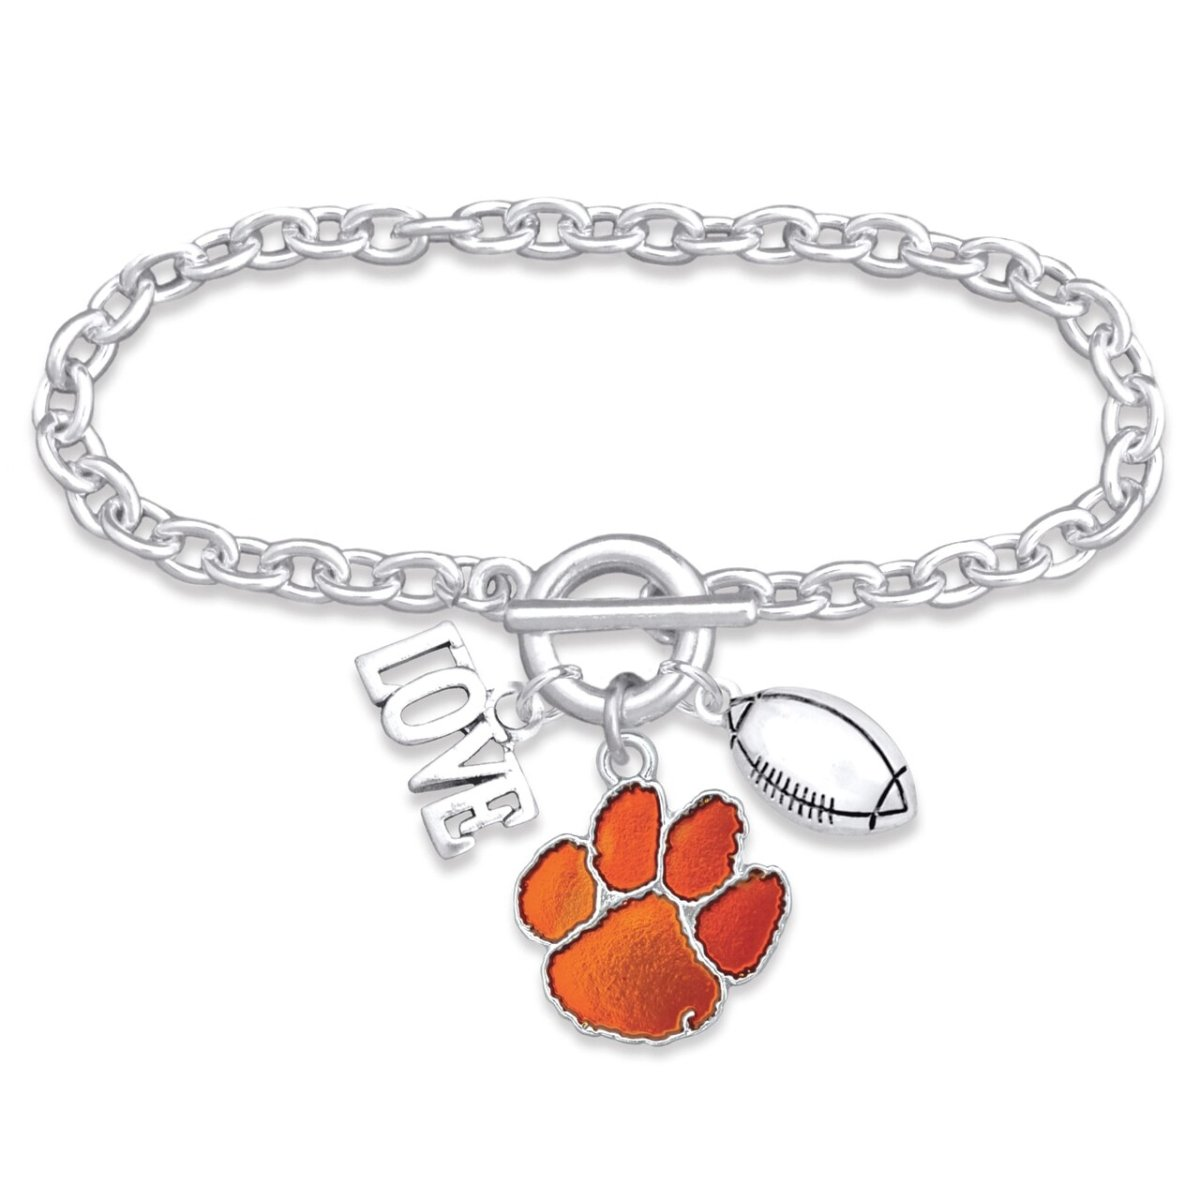 Silver Tone Paw Touchdown Bracelet With Love and Football Charm - Mr. Knickerbocker